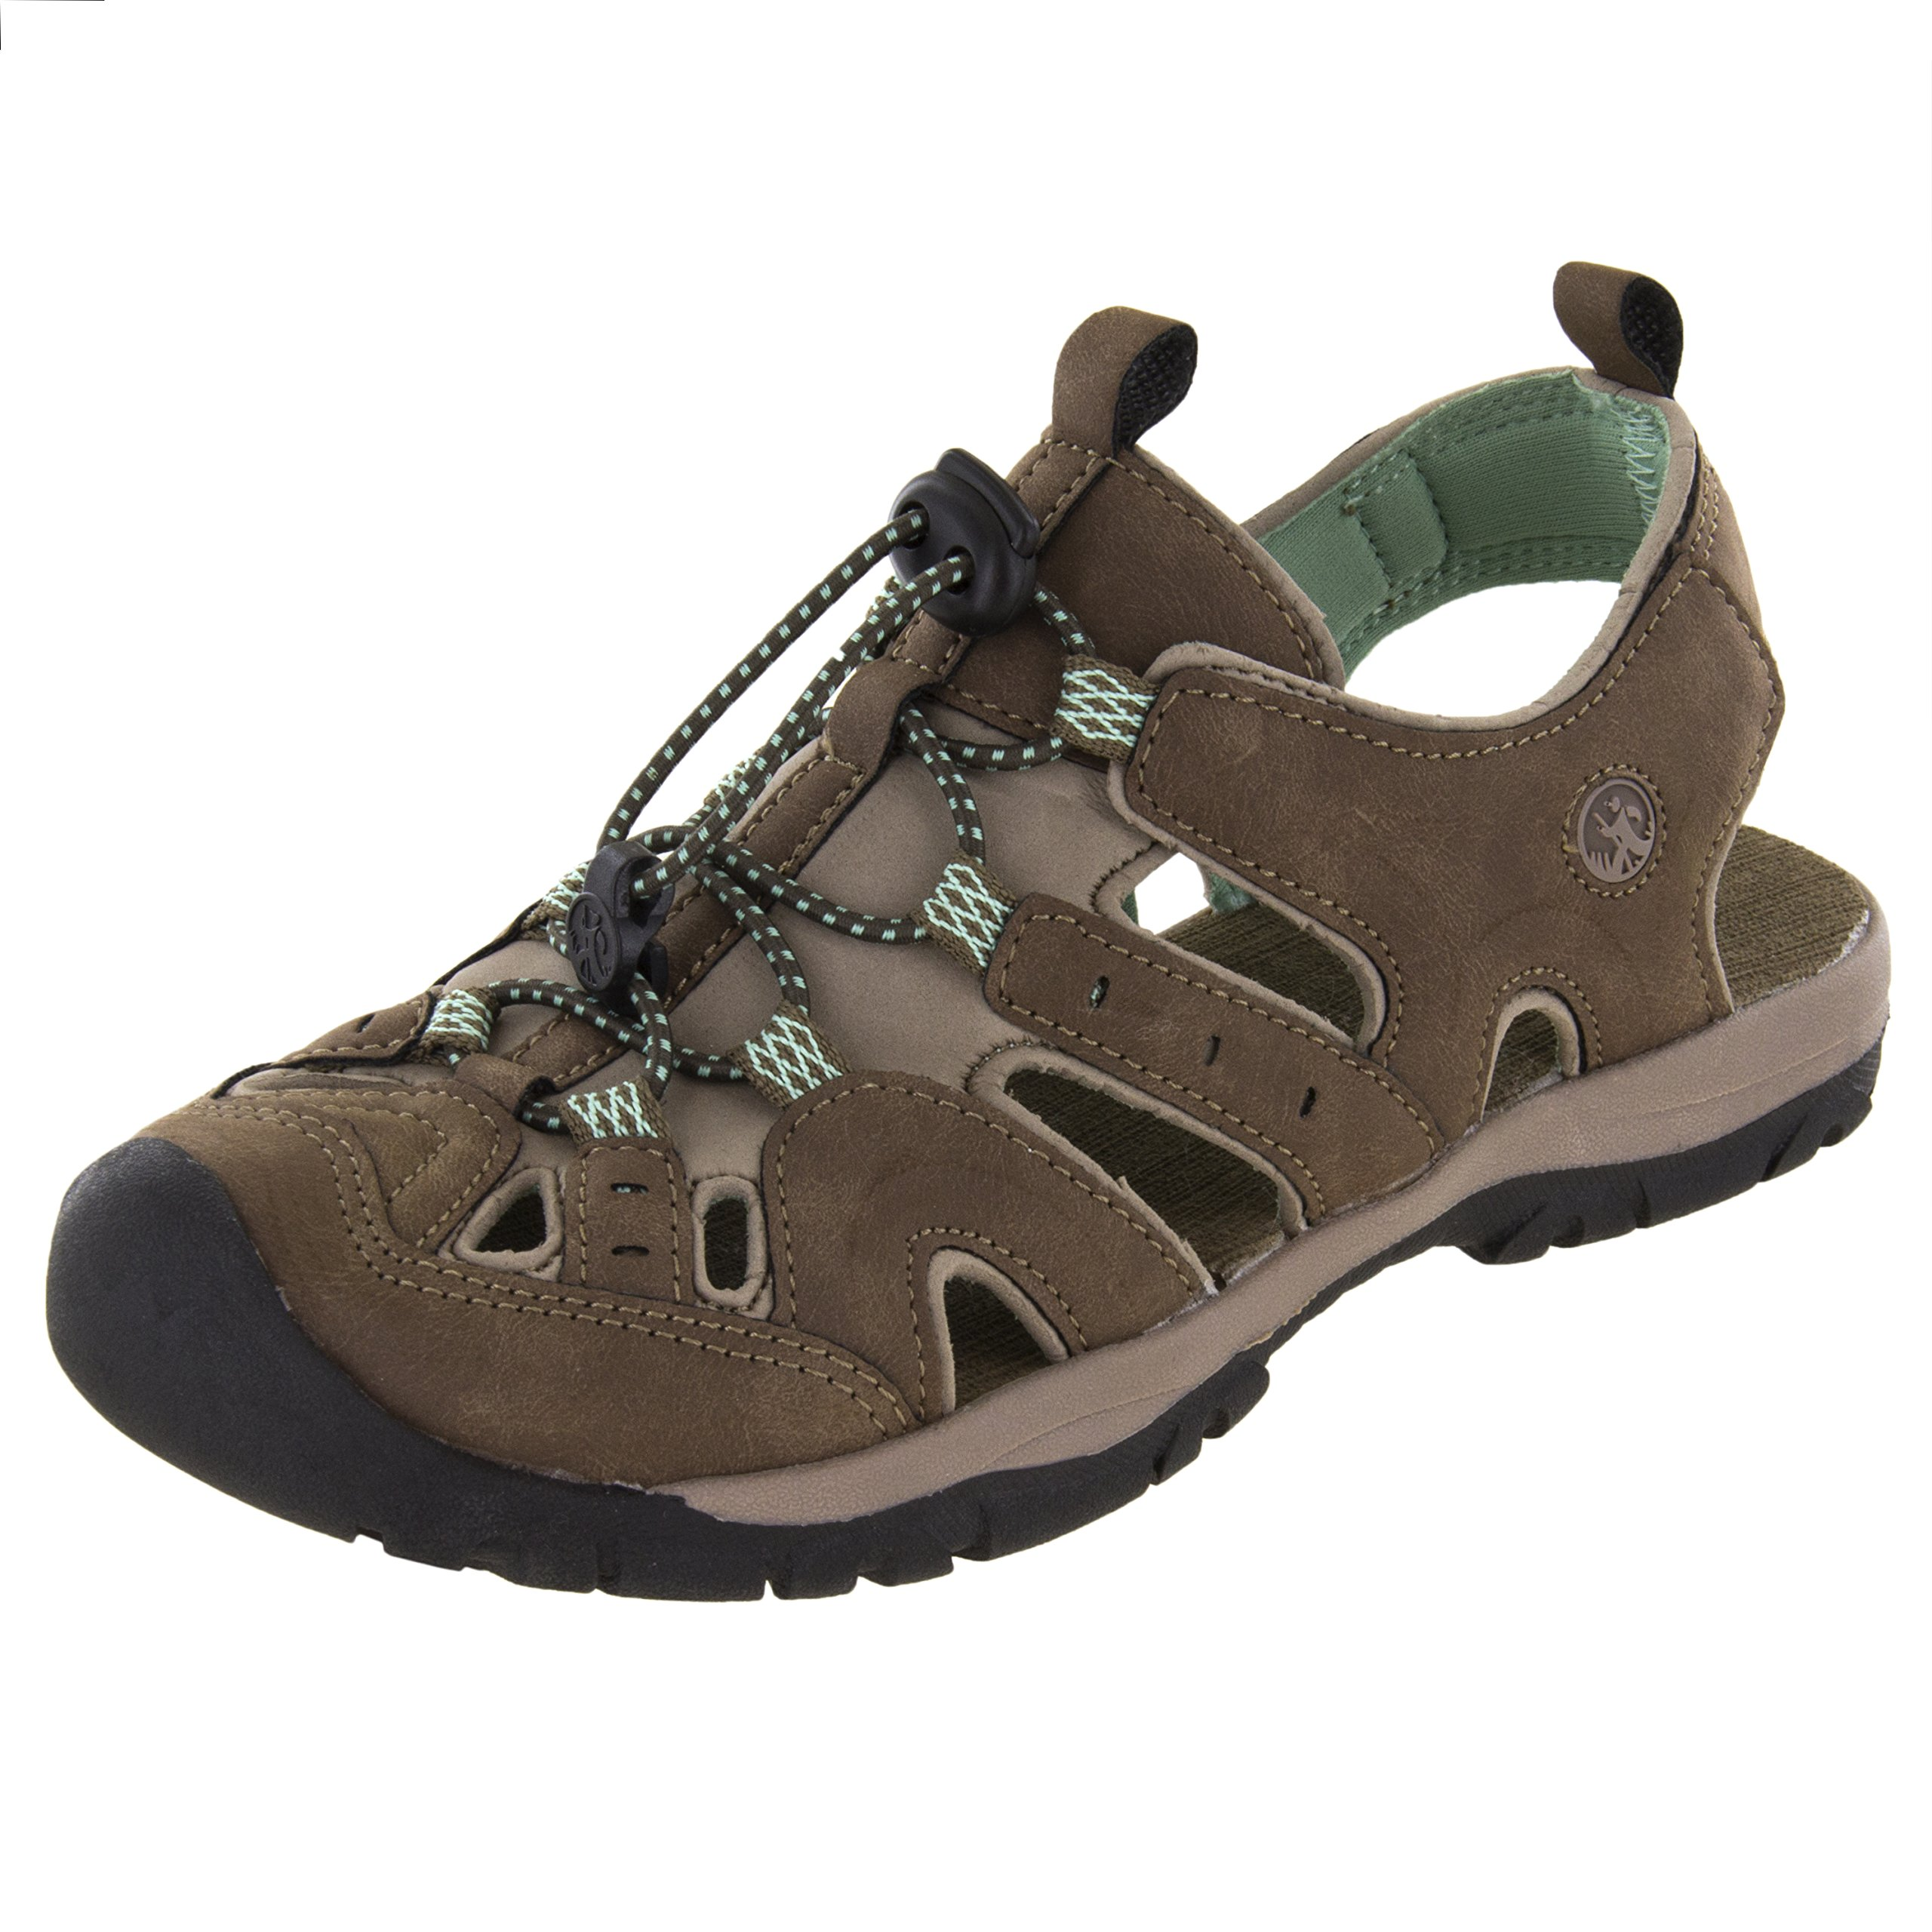 Northside Women's Burke II Athletic Sandal, Dk Brown/Sage, 7 B(M) US